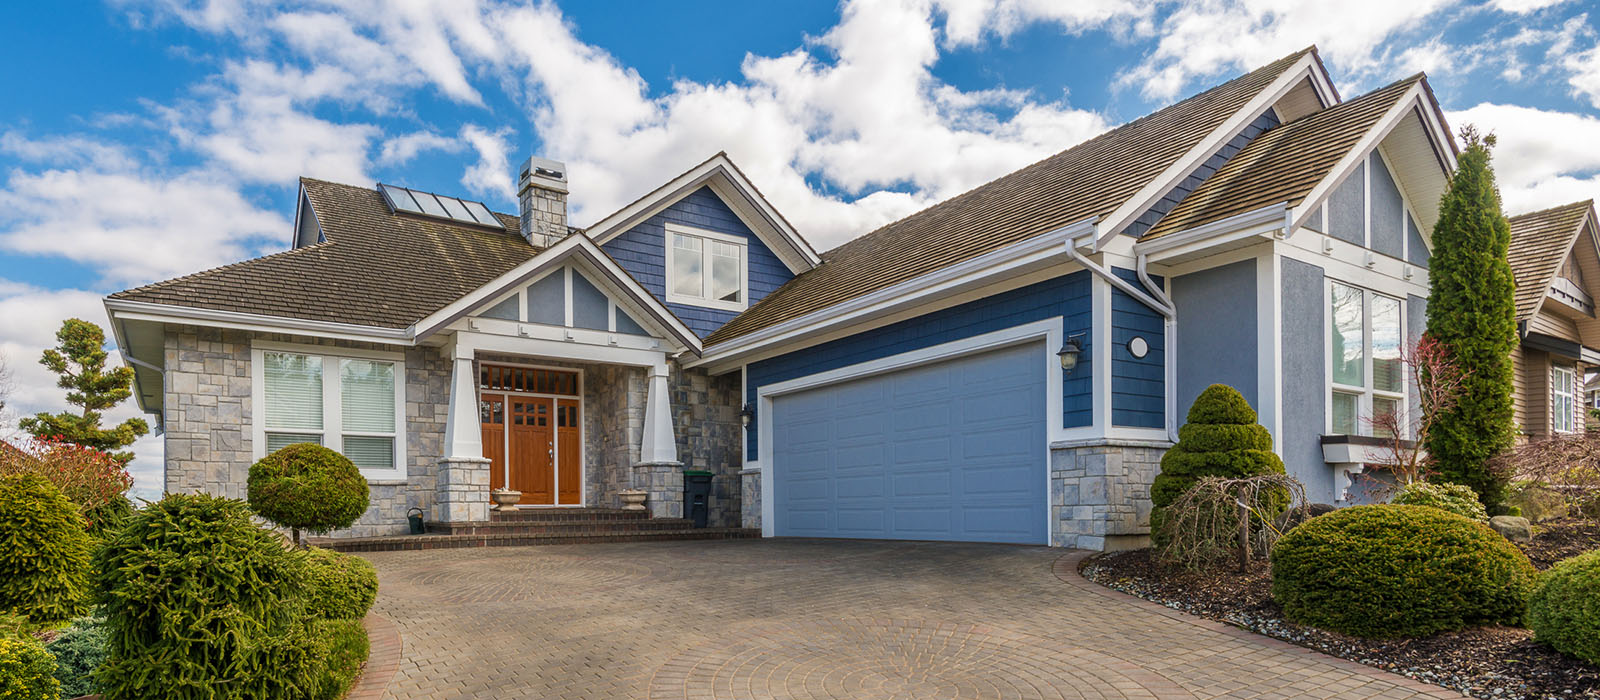 portland-relocation_0011_bigstock-Luxury-house-with-a-two-car-ga-62321123